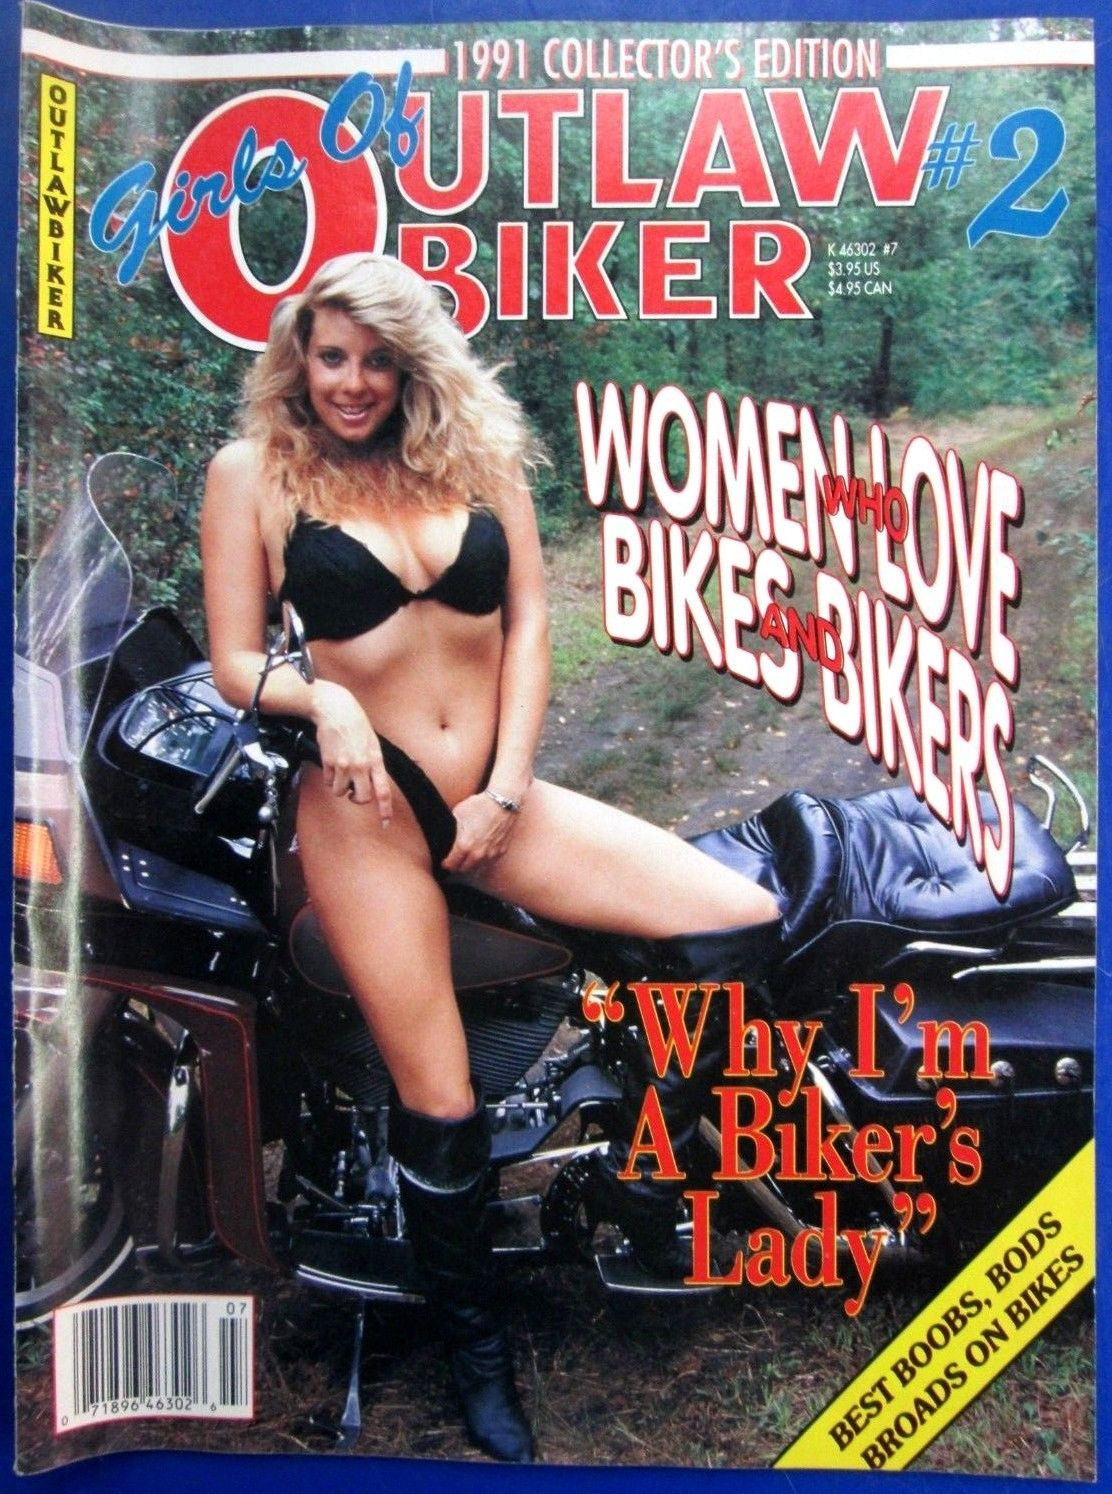 outlaw biker- women who love bikes and bikers